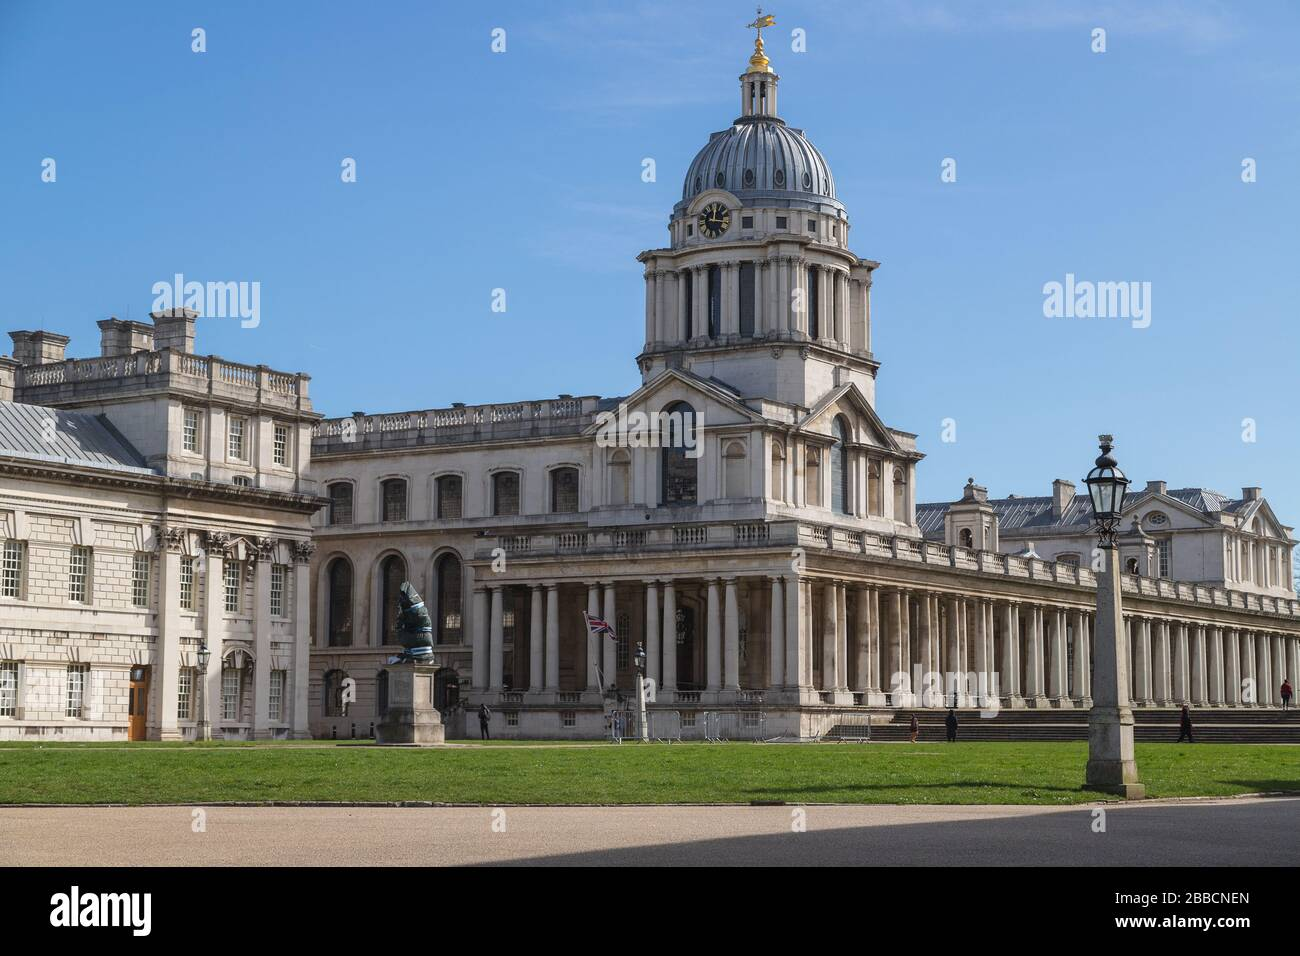 LONDON, UK - 21ST MARCH 2020: Architecture on the University of Greenwich in London. A few people can be seen. Stock Photo